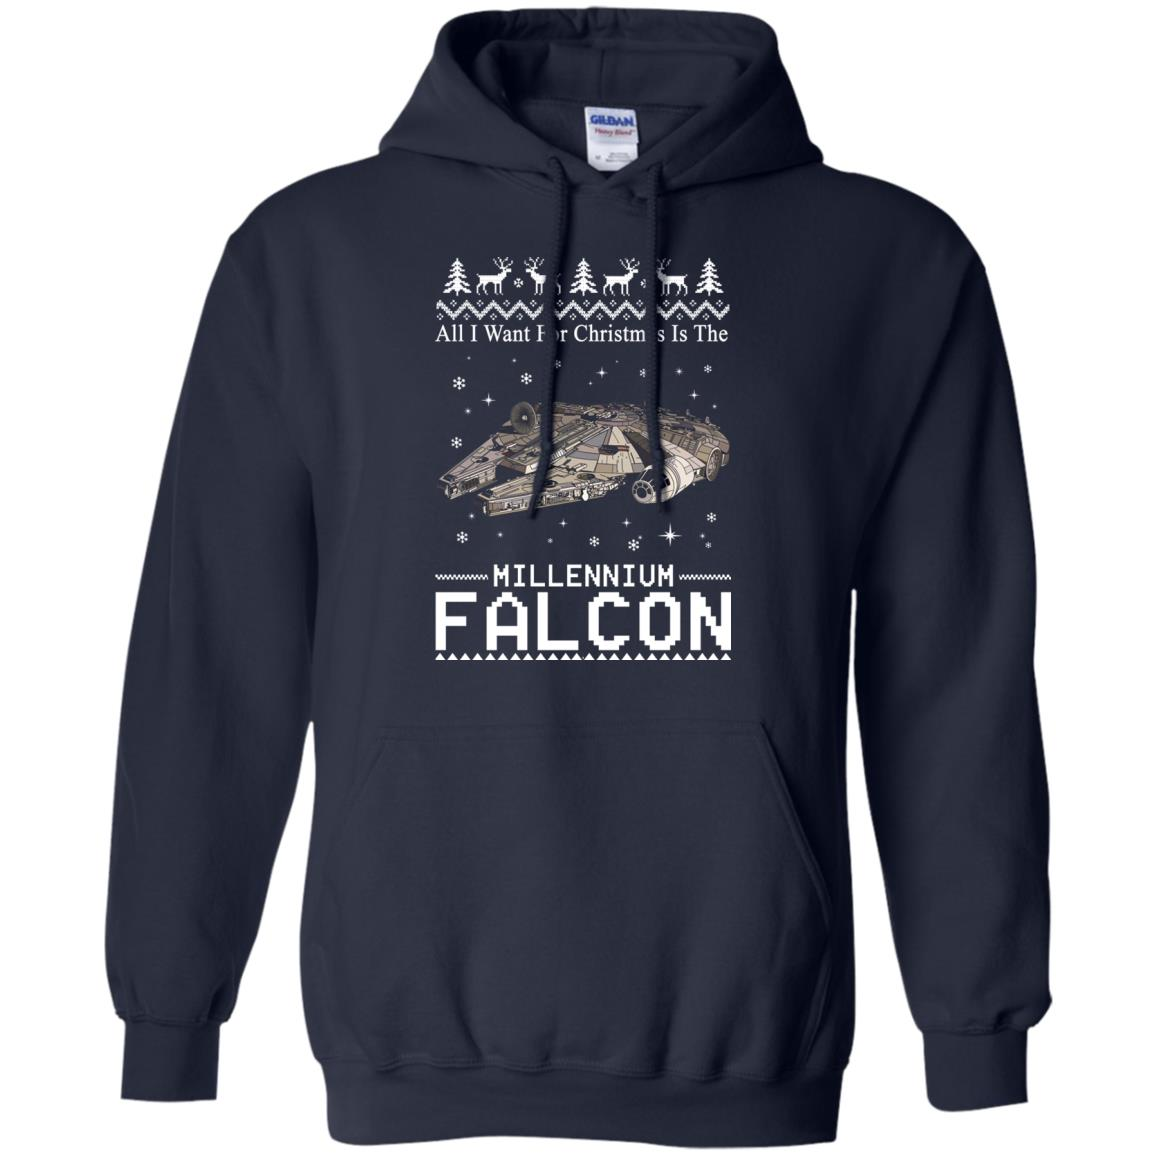 image 2136 - All I Want For Christmas is The Millennium Falcon Sweater, Ugly Sweatshirt